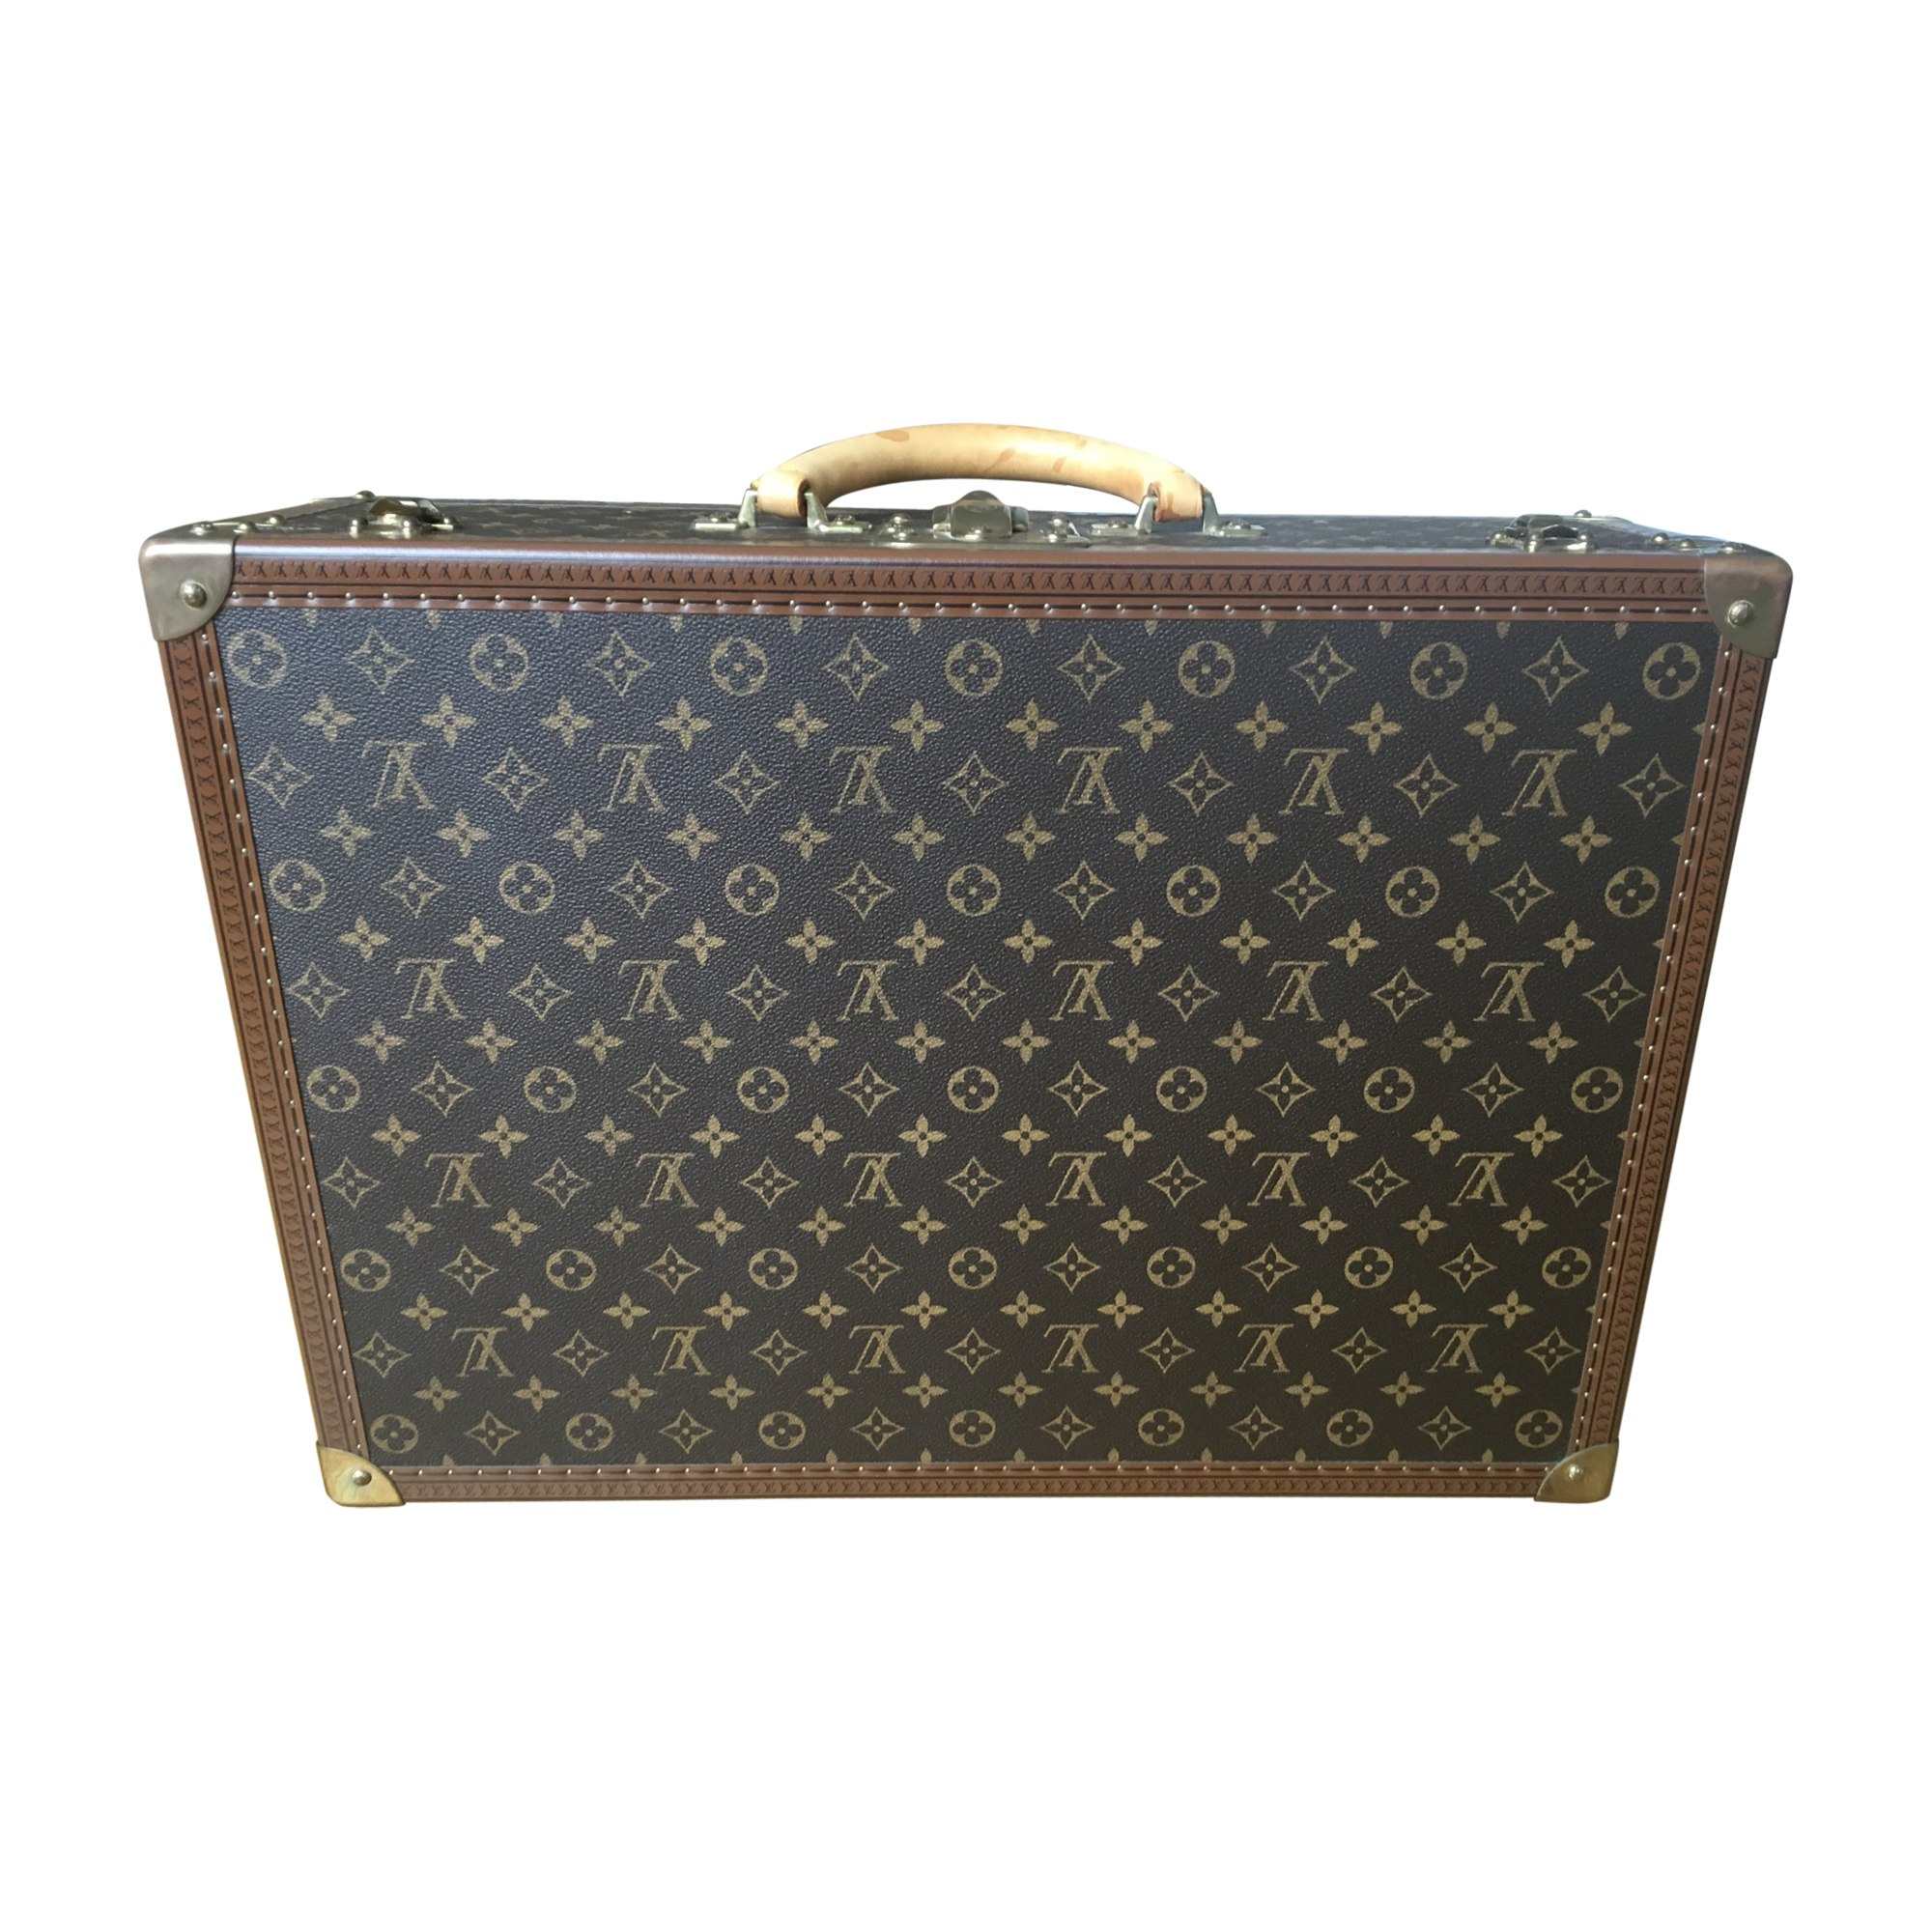 afc3706f8b4 Mallette LOUIS VUITTON marron - 7988431